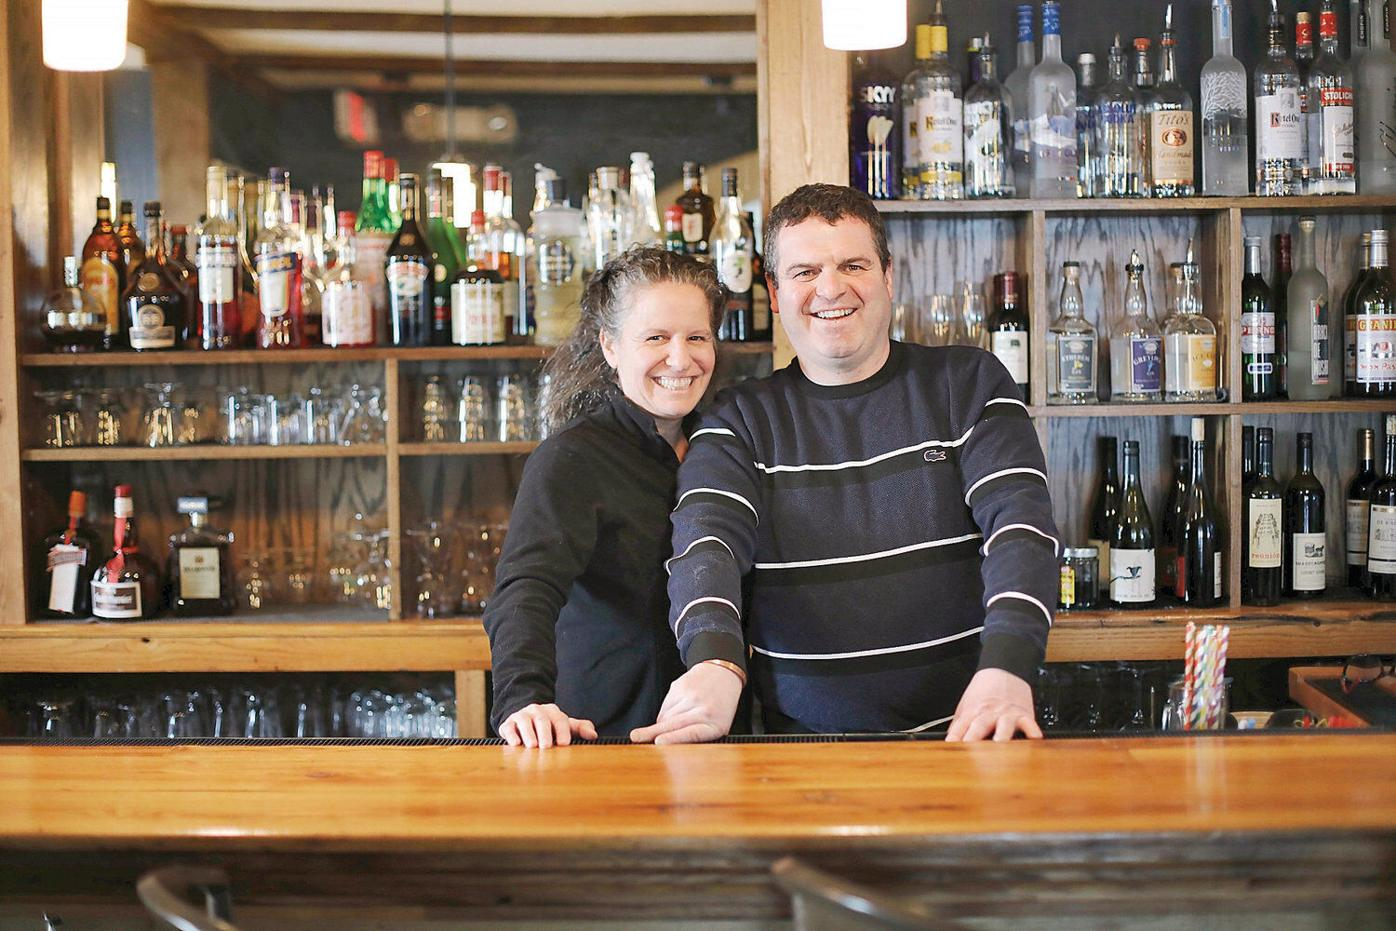 Chez Nous Bistro: A night out for a cause